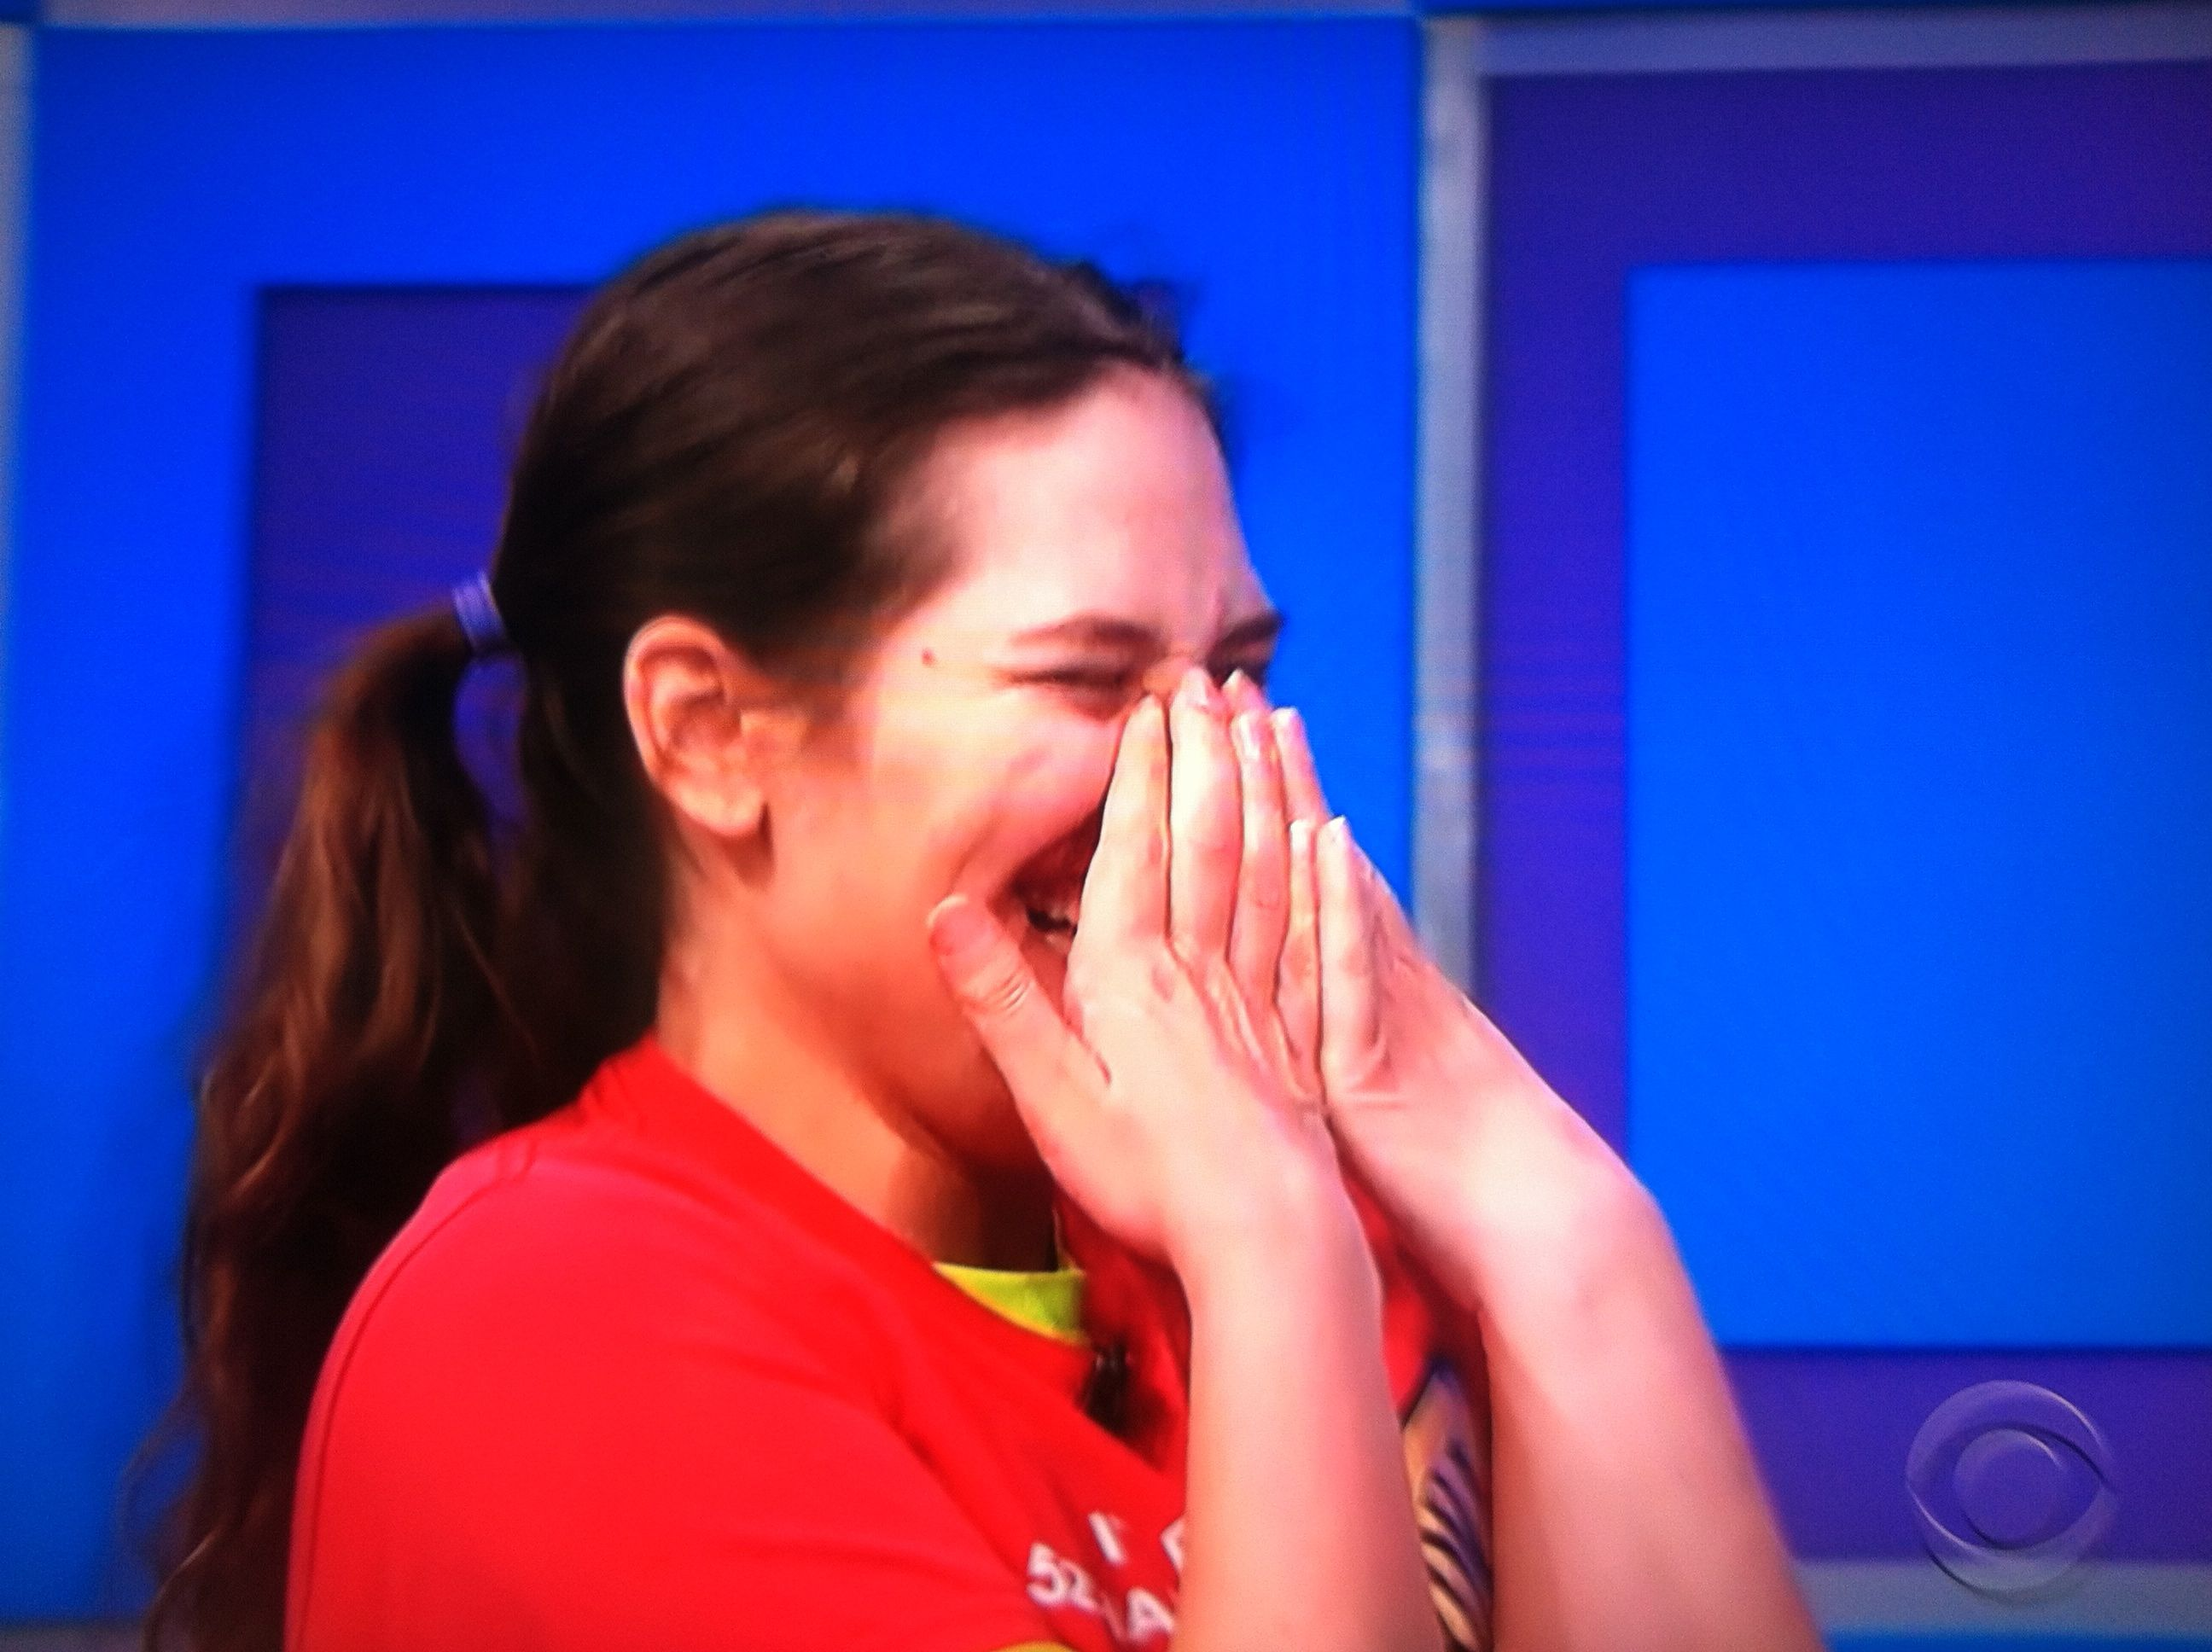 Aurora De Lucia with a huge smile/laugh as Drew Carey makes fun of her on the Price is Right